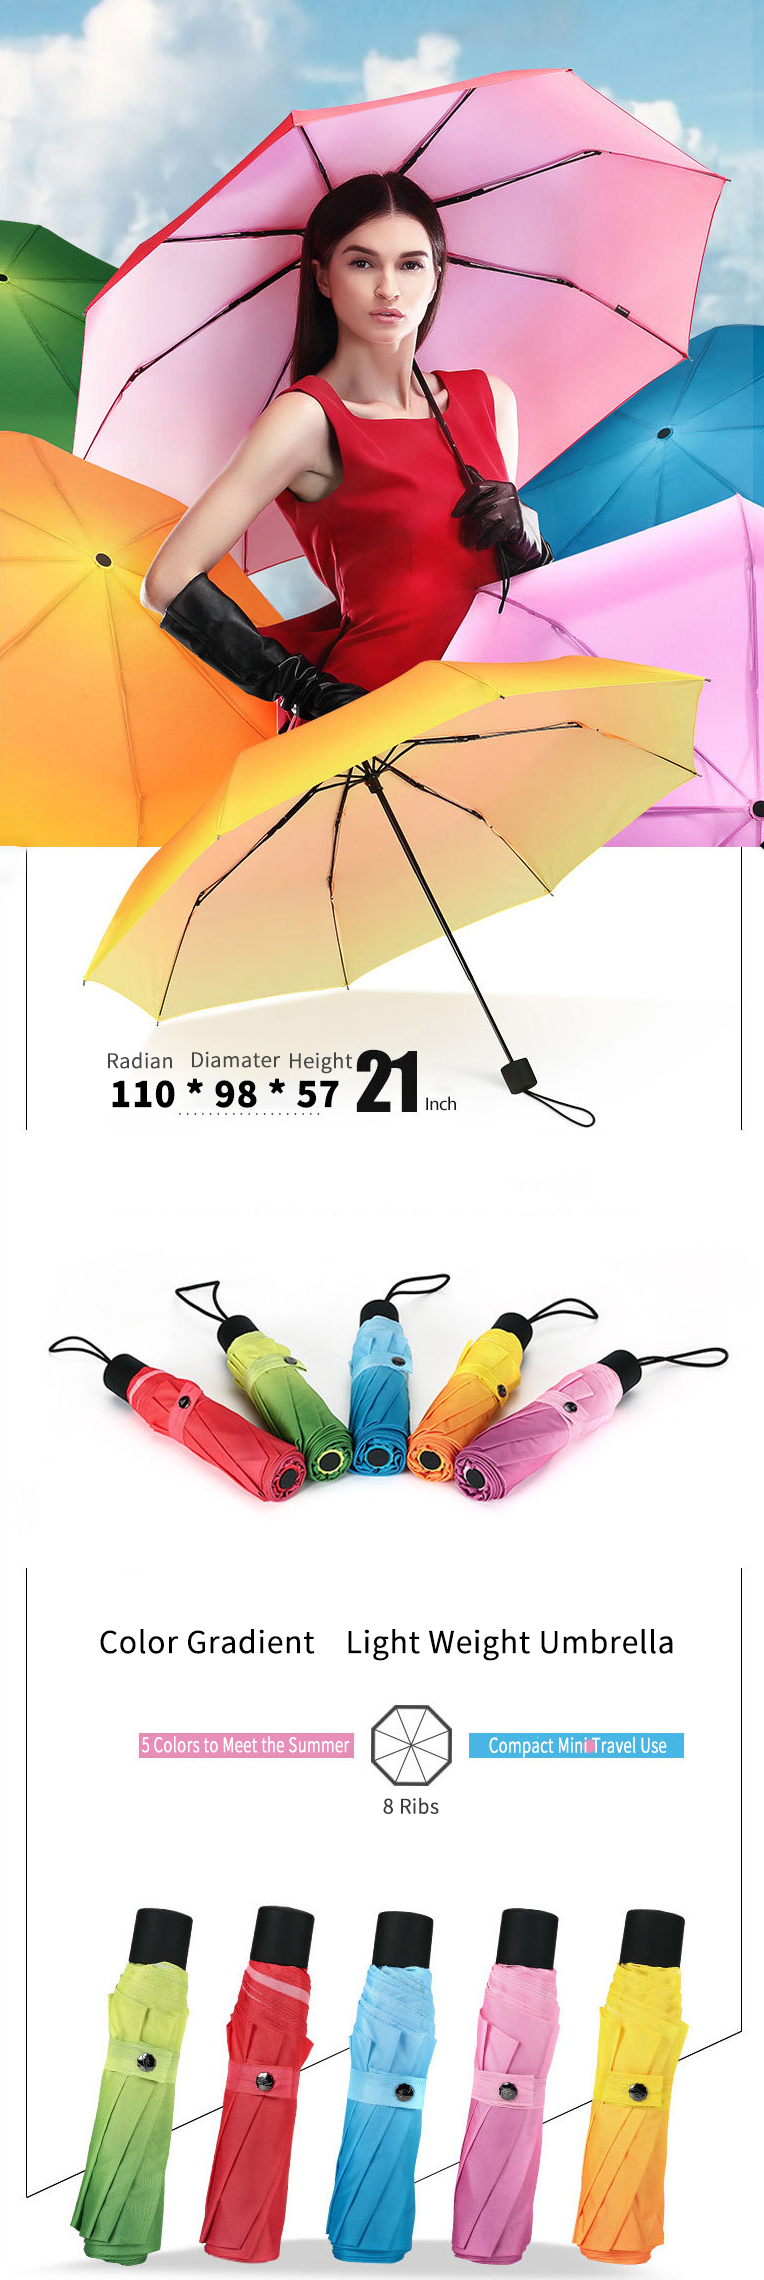 Color Gradient Light Weight Umbrella 3 Folding 8 Bones Compact Travel Windproof Umbrella Women Gift